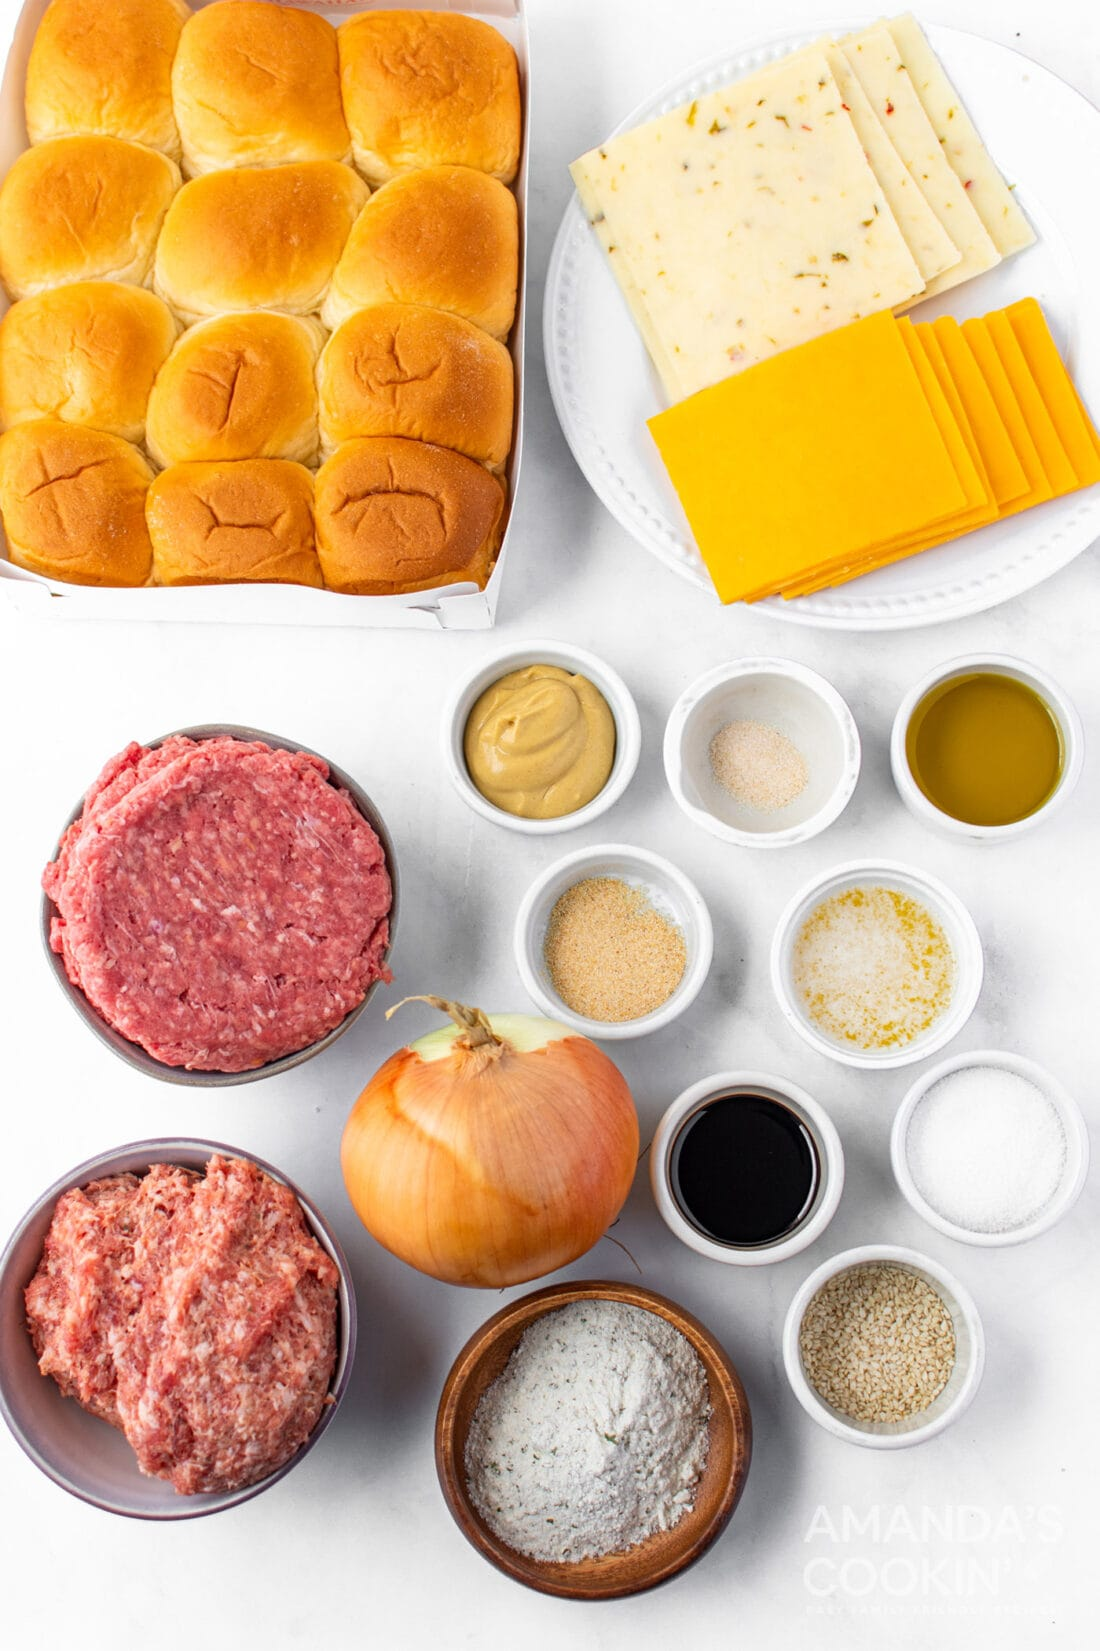 ingredients for cheeseburger sliders